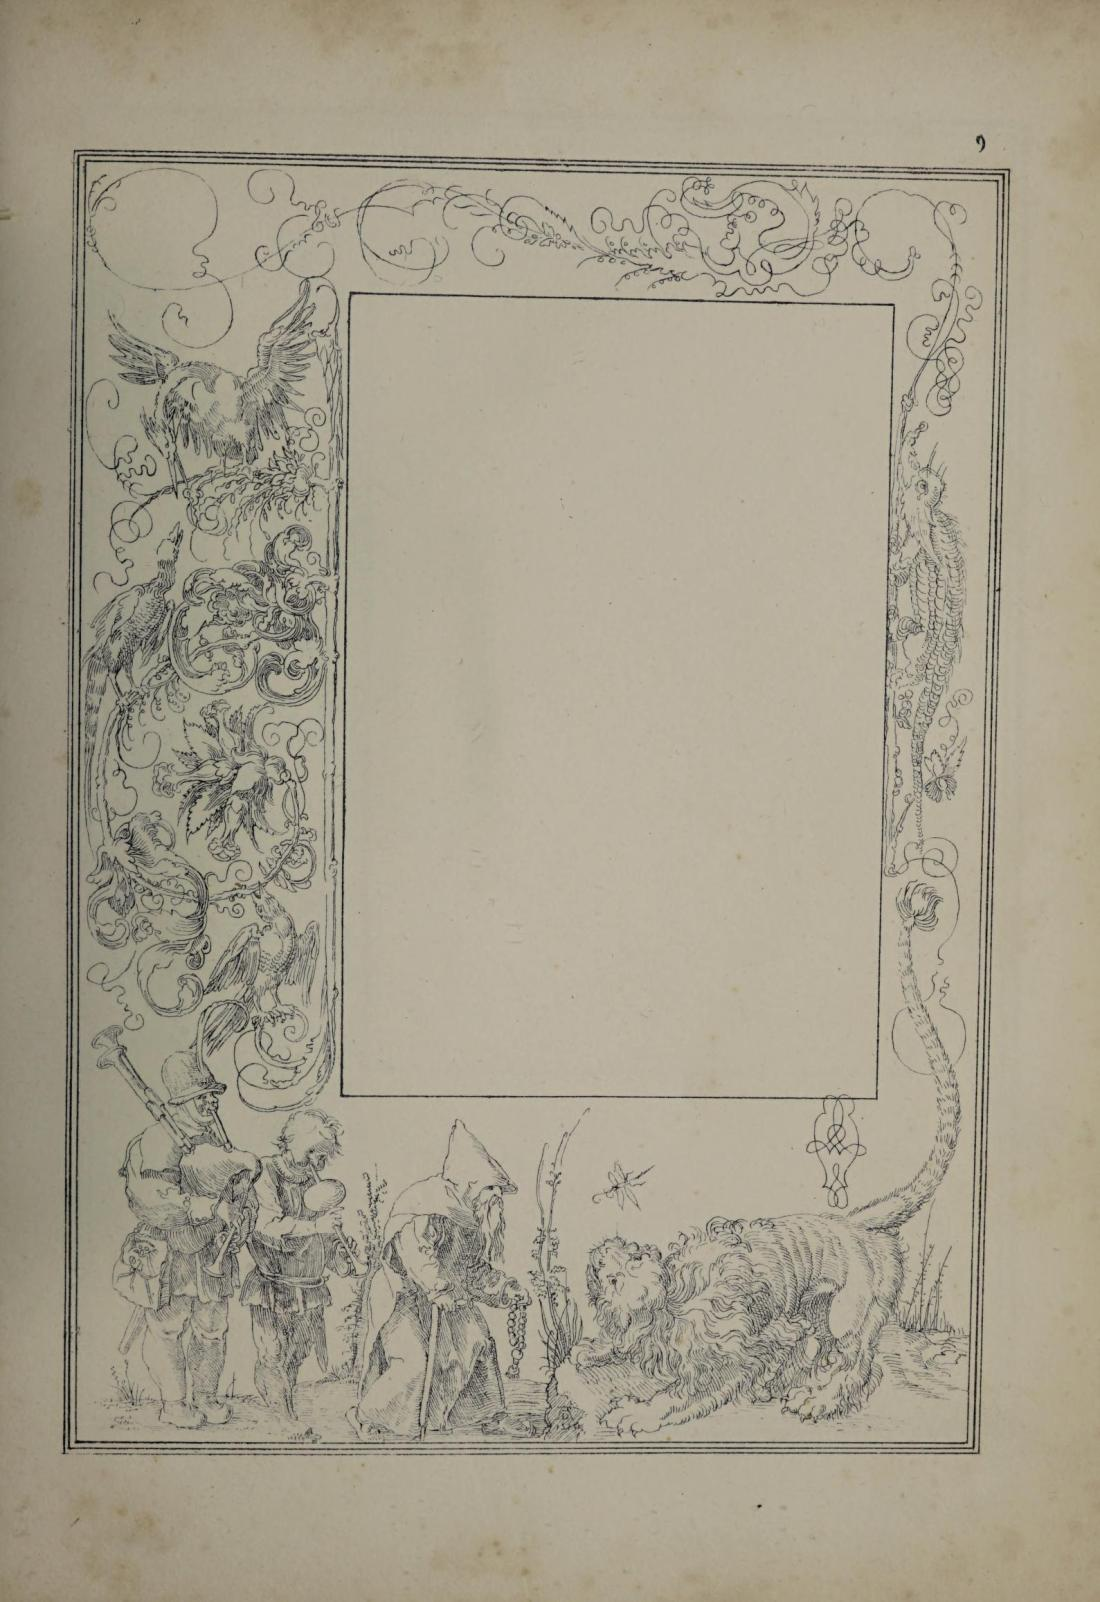 Page 27 (detail).